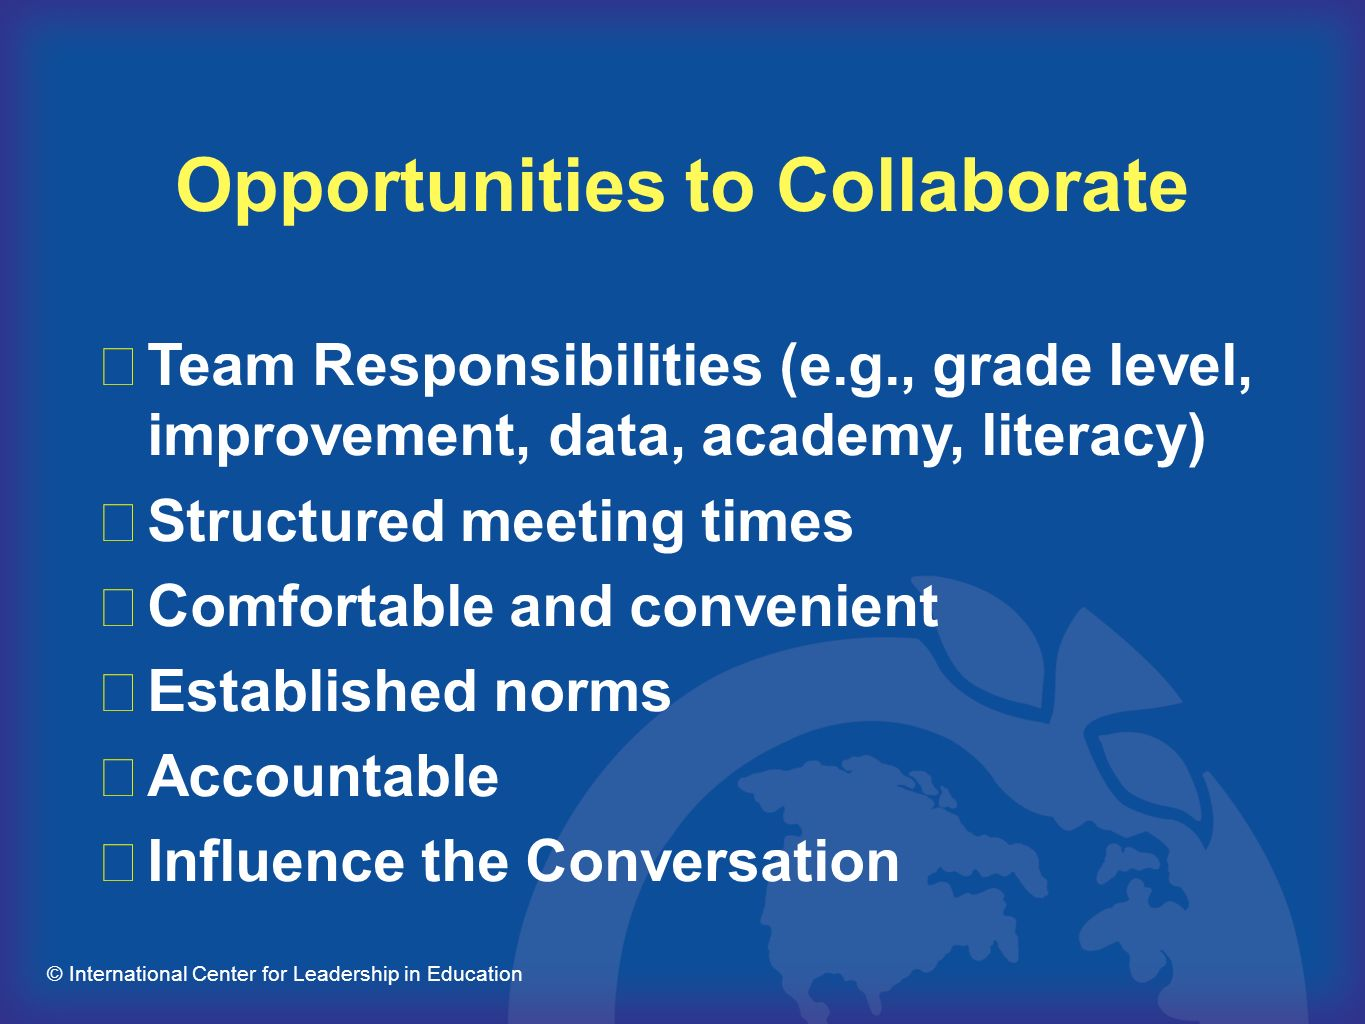 Opportunities to Collaborate